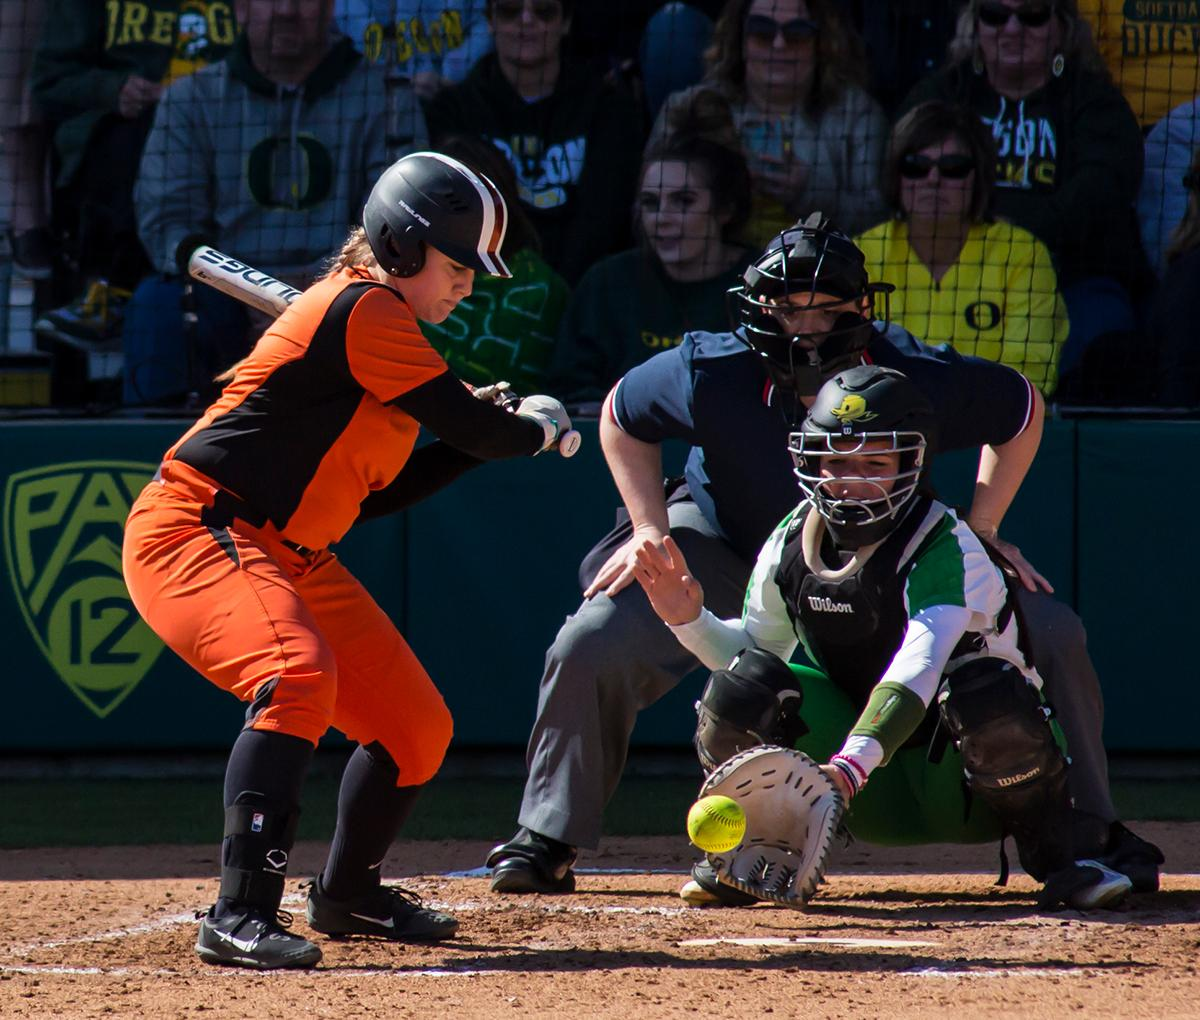 Oregon State in-fielder Alyssa Everett (#5) watches a pitch fly into the mitt of Oregon Catcher Gwen Svekis (#21). The Oregon Ducks defeated the Oregon State Beavers seven to zero on Sunday, April 30, 2017. The Ducks' victory marked the third victory of the three game sweep against the Beavers. Photo by Ben Lonergan, Oregon News Lab